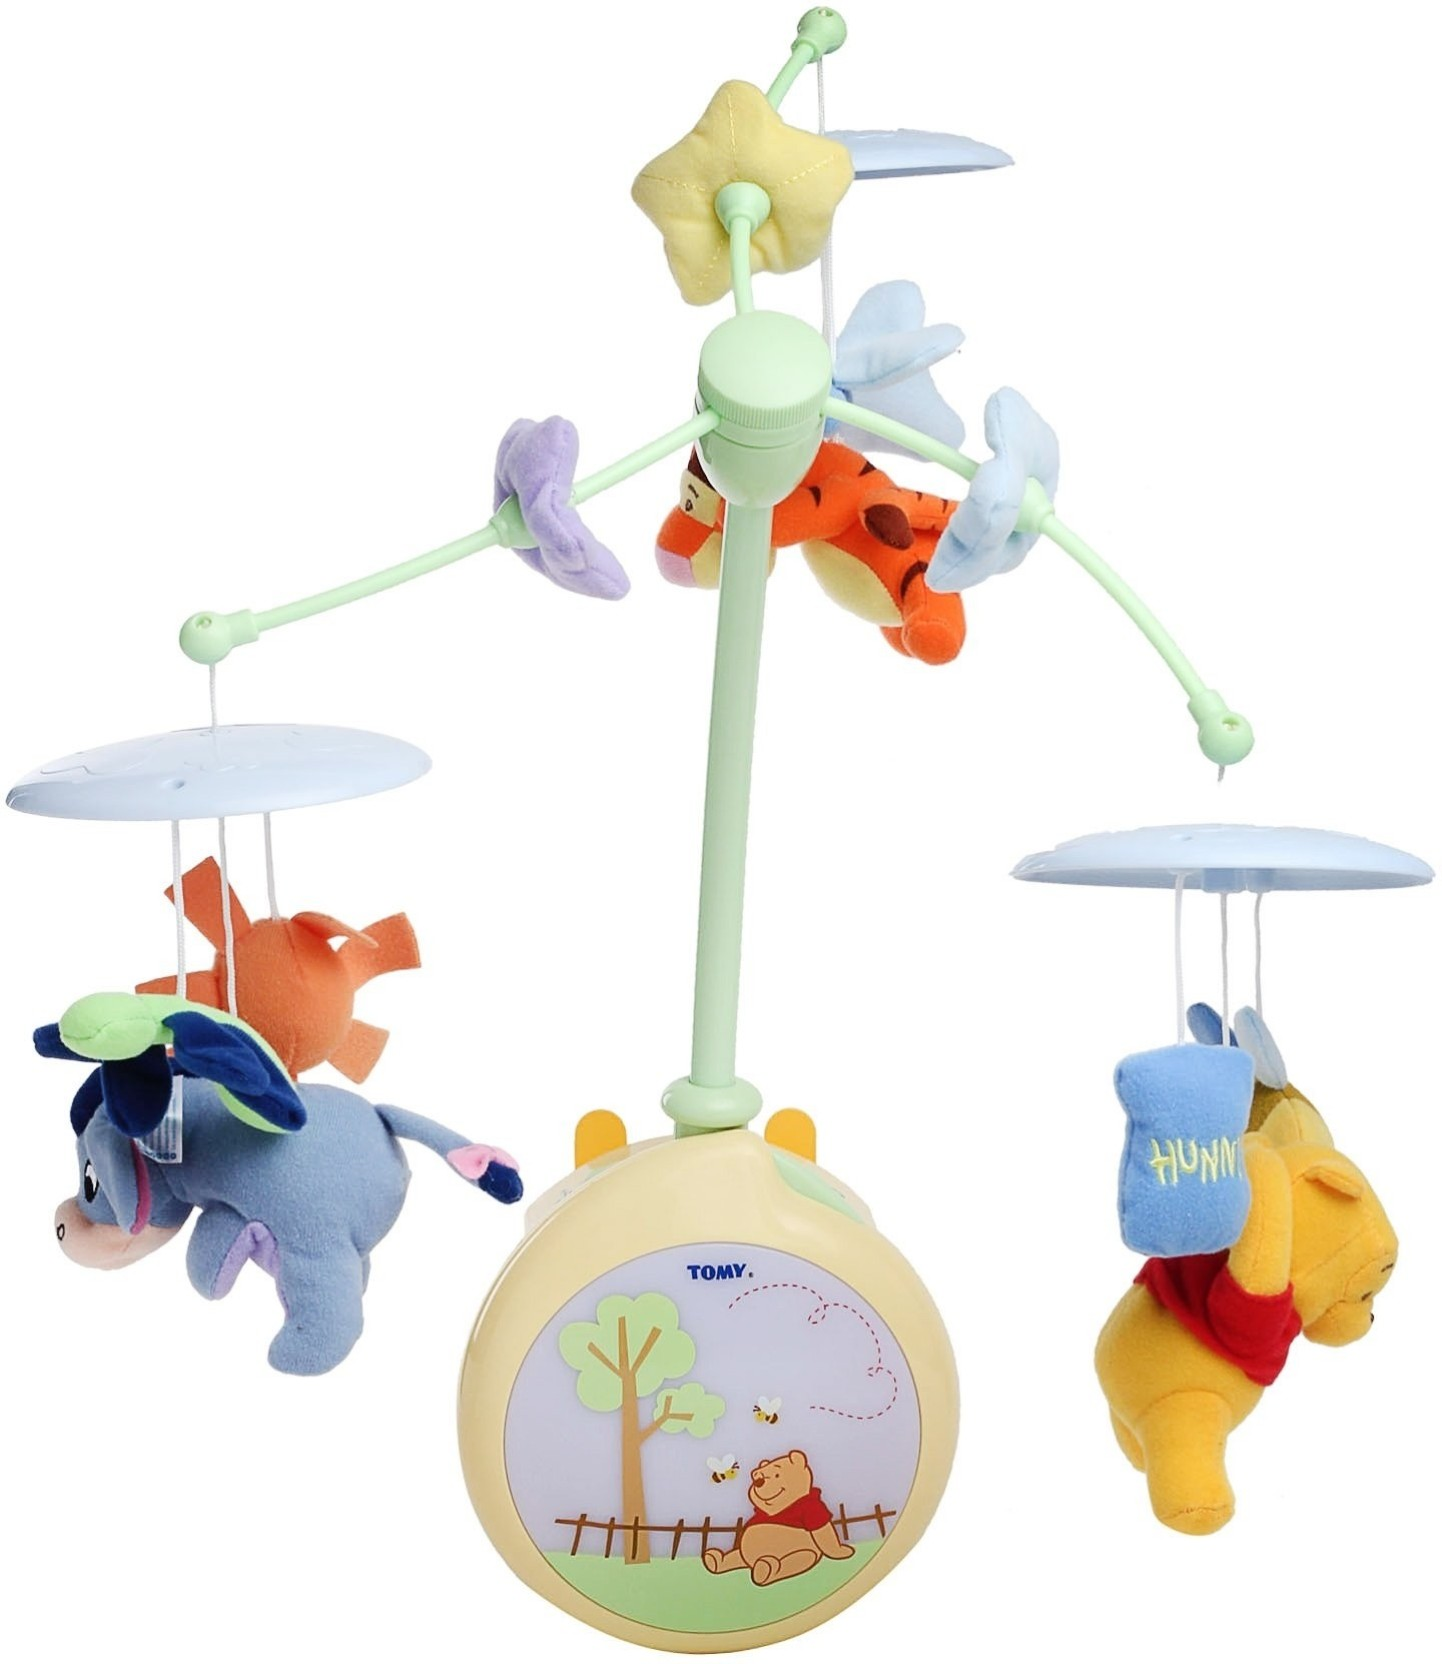 Tomy Winnie The Pooh Light Up Cot Mobile Winnie The Pooh